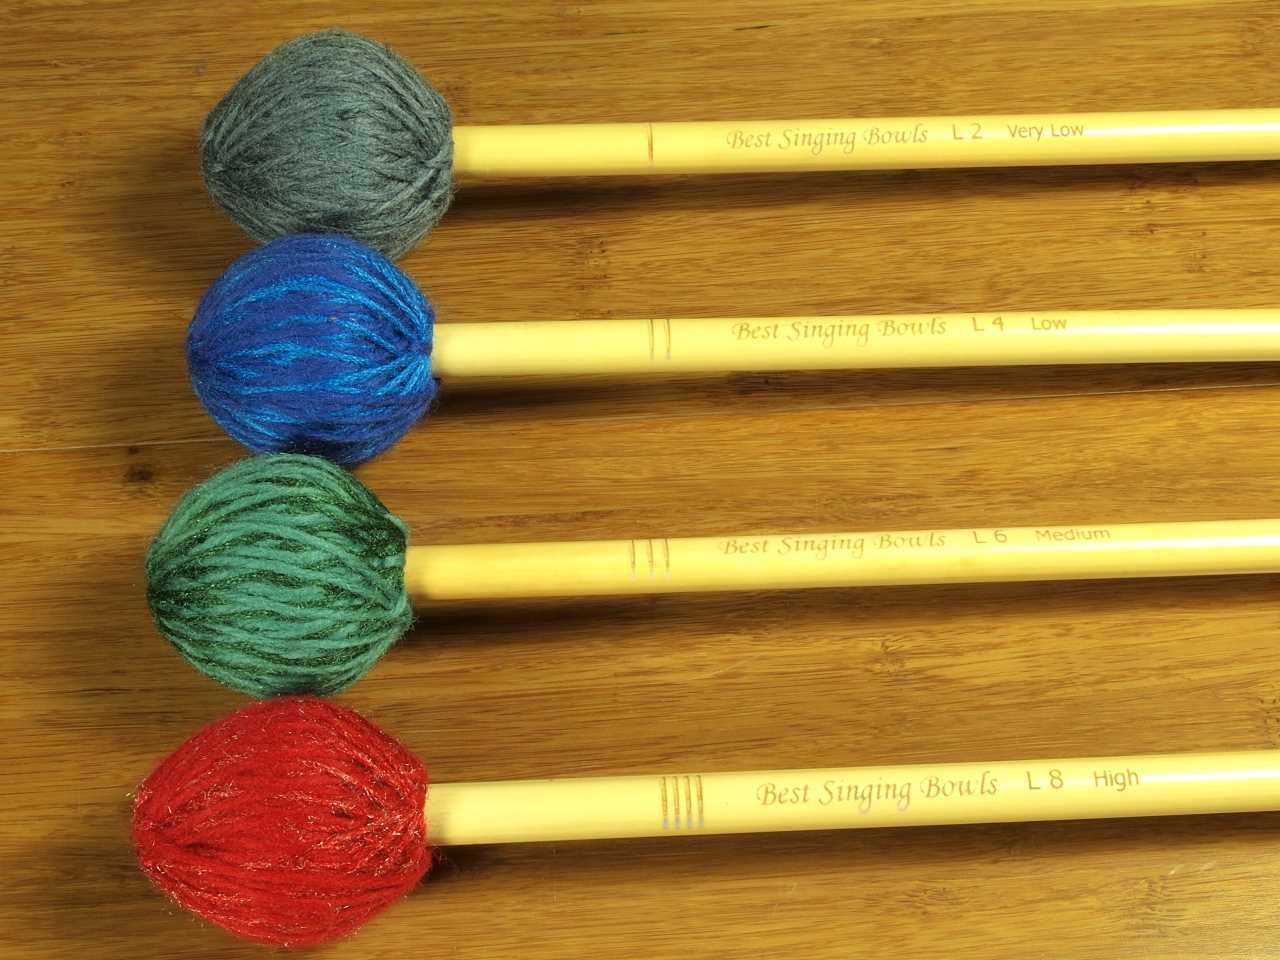 Best Singing Bowls Precision Large Red Yarn Mallet